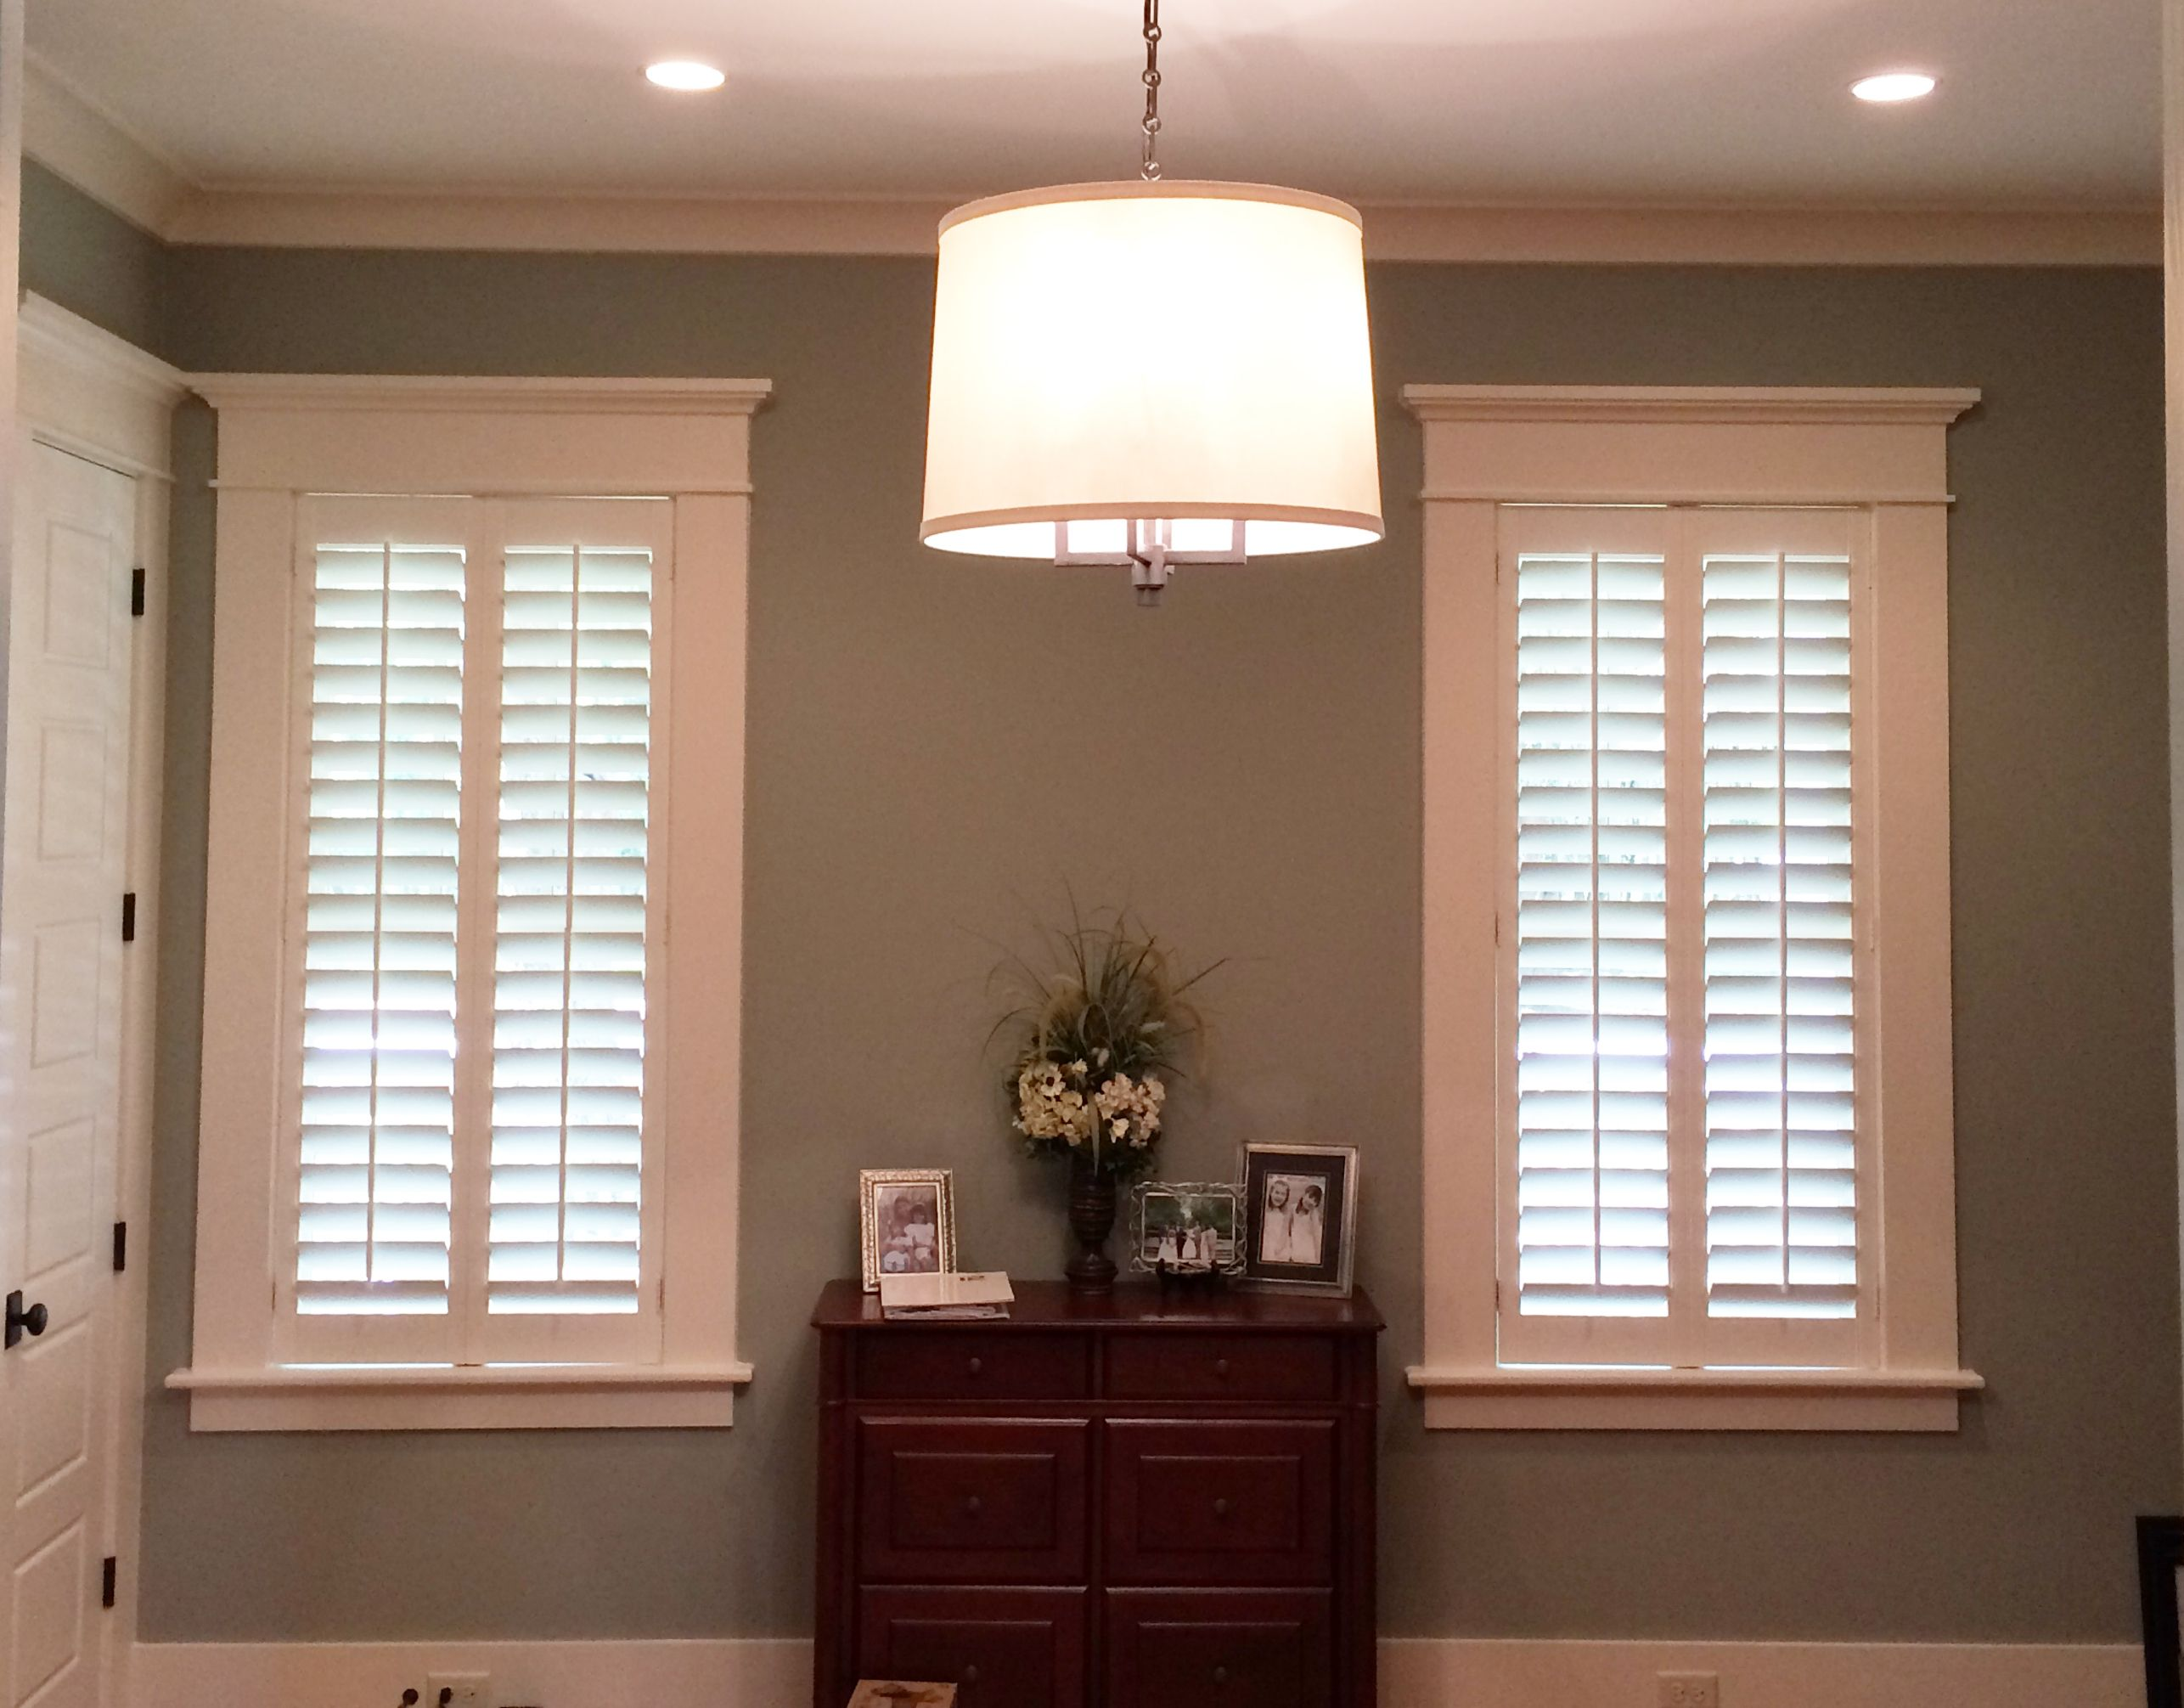 woodlore interior shutters shutter florida they attractive experts re composite orlando